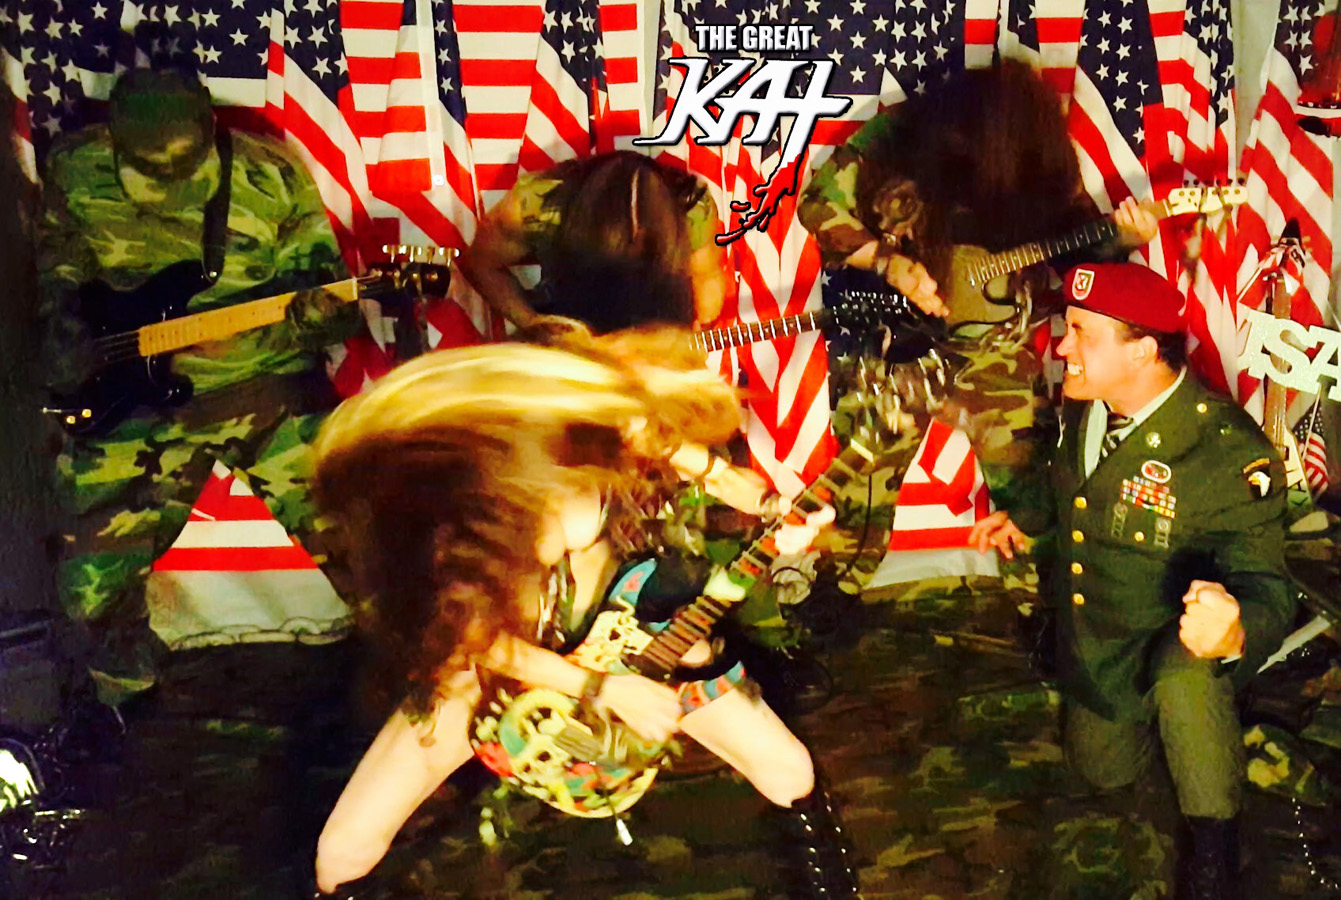 """SHRED WARRIOR THE GREAT KAT! NEW """"TERROR"""" Music Video with ALL-MALE HUNK ARMY BAND! VICIOUS! INSANE! HOT!!"""